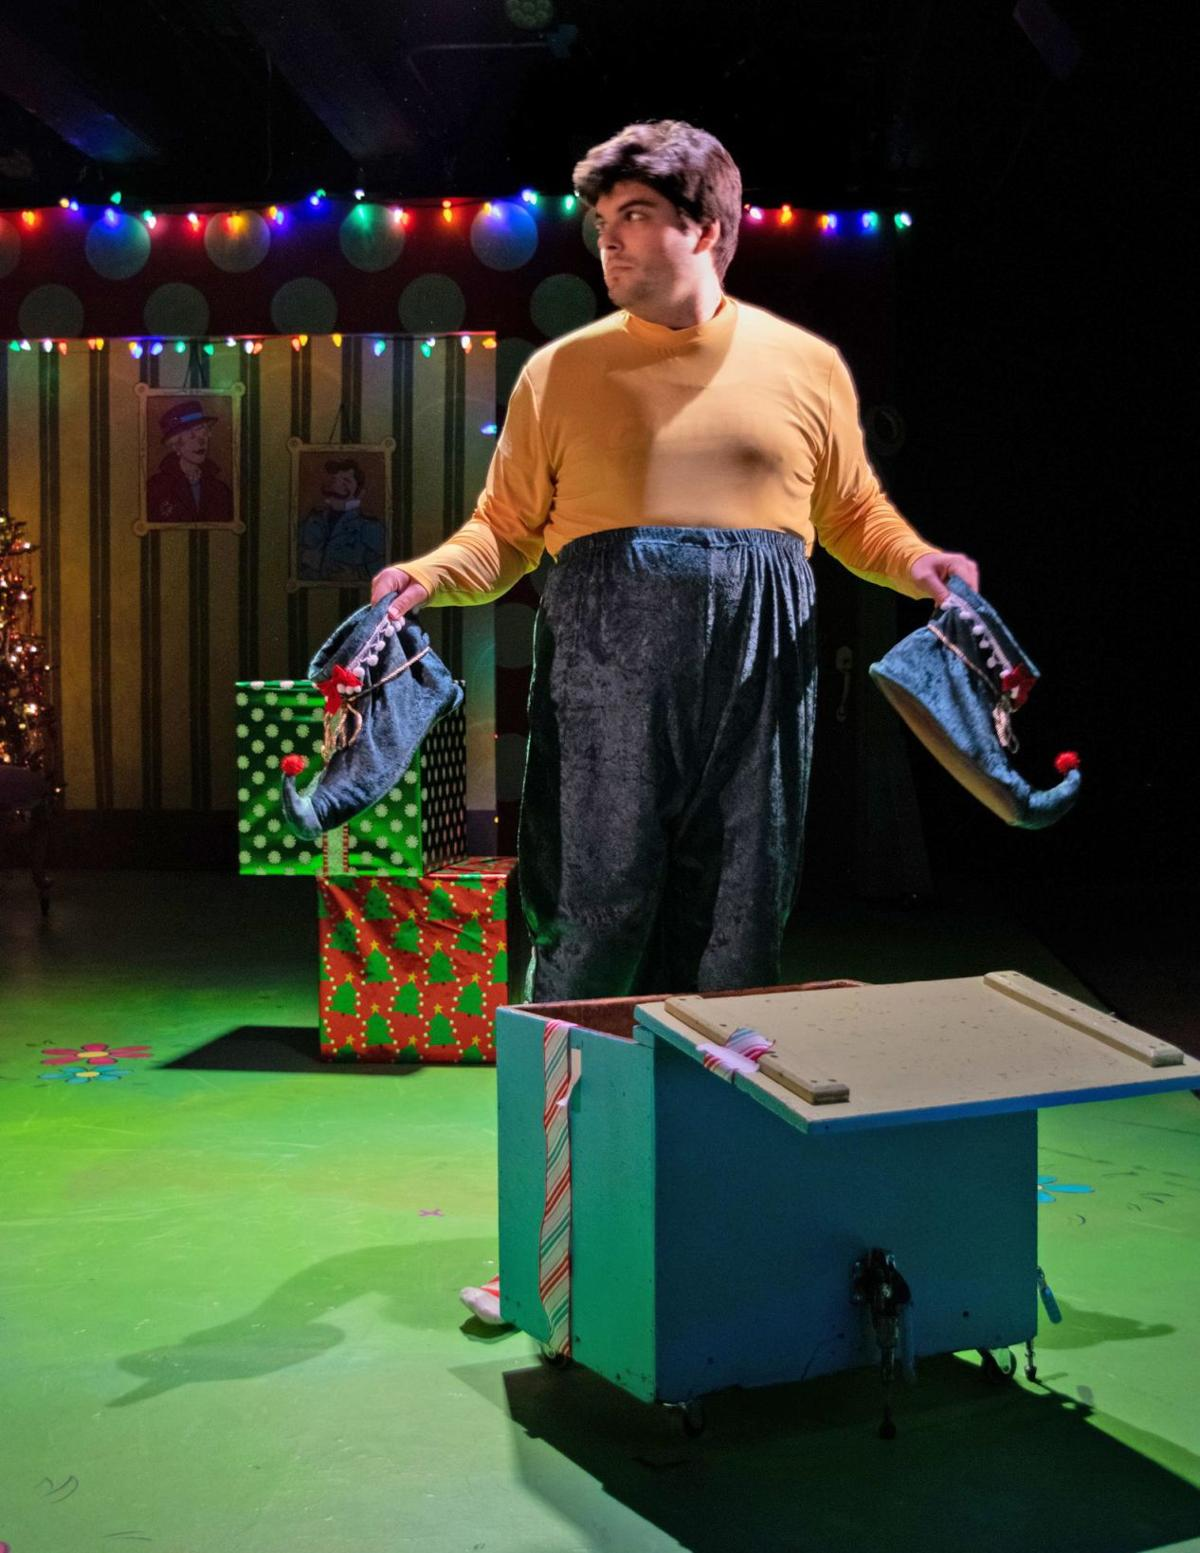 Review: All Christmas elves must report to Playhouse on Park